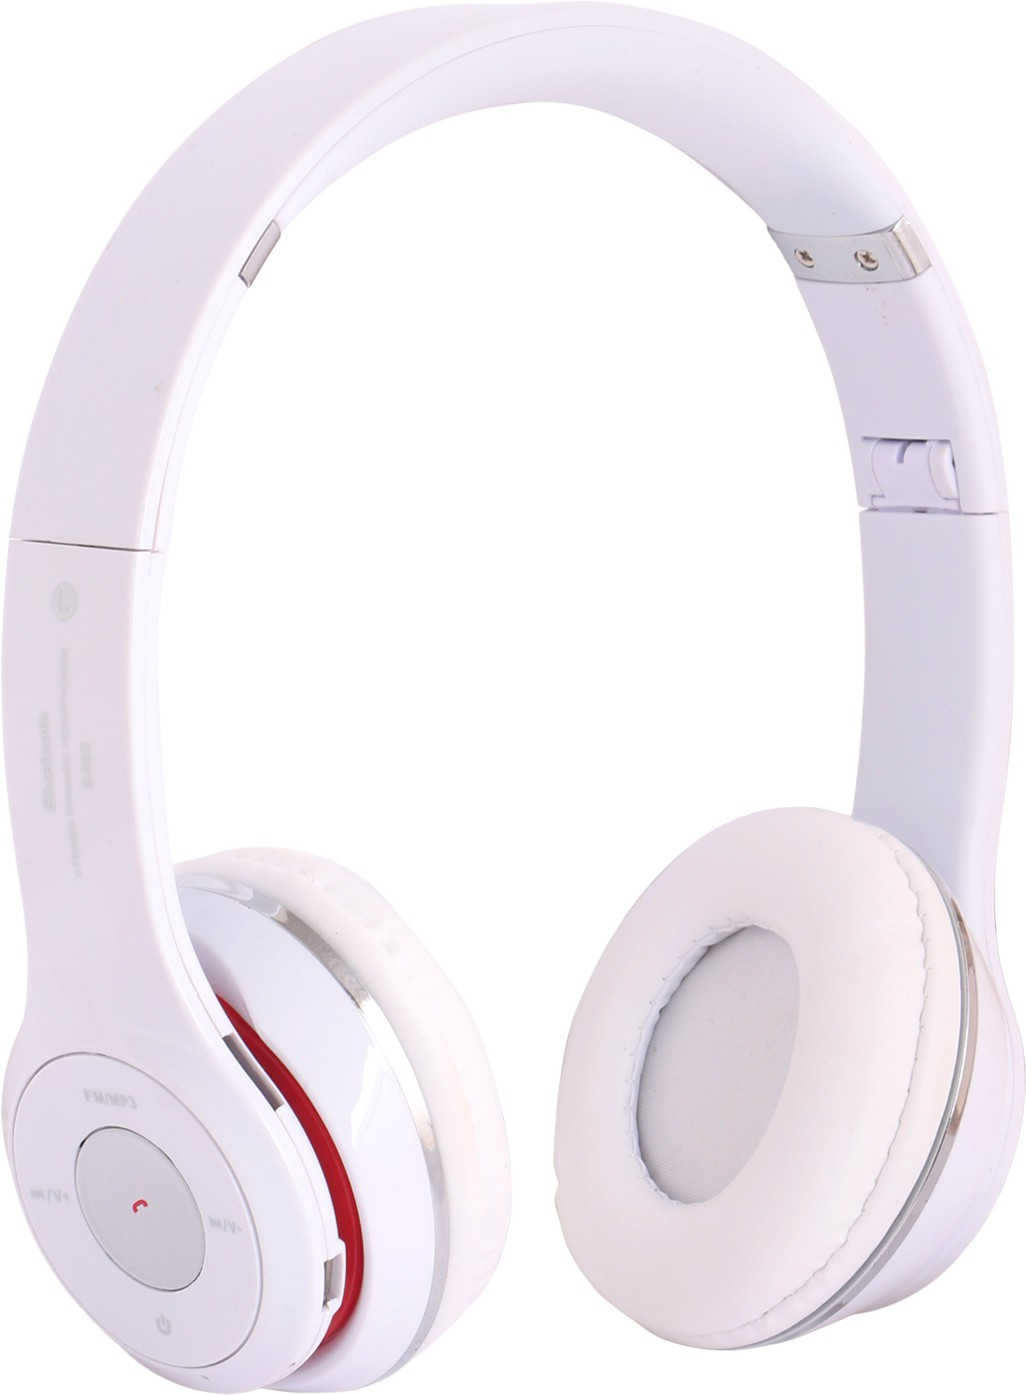 REJUVENATE S460 WIRED & WIRELESS WITH TF CARD SUPPORT Wired & Wireless Bluetooth Gaming Headset With Mic(White)